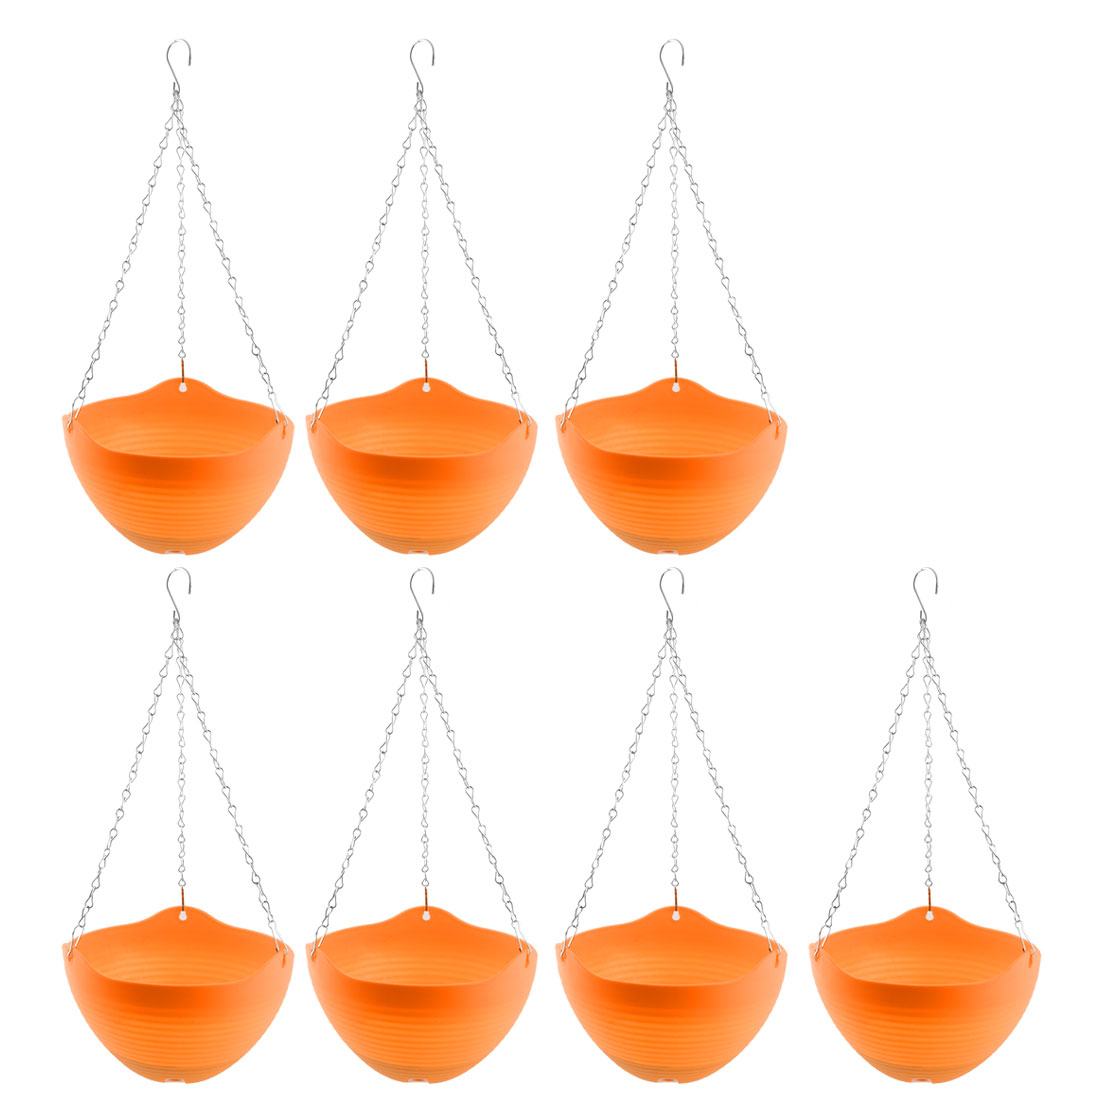 Balcony Plastic DIY Chain Hanging Flower Cactus Pot Holder Container Orange 7pcs